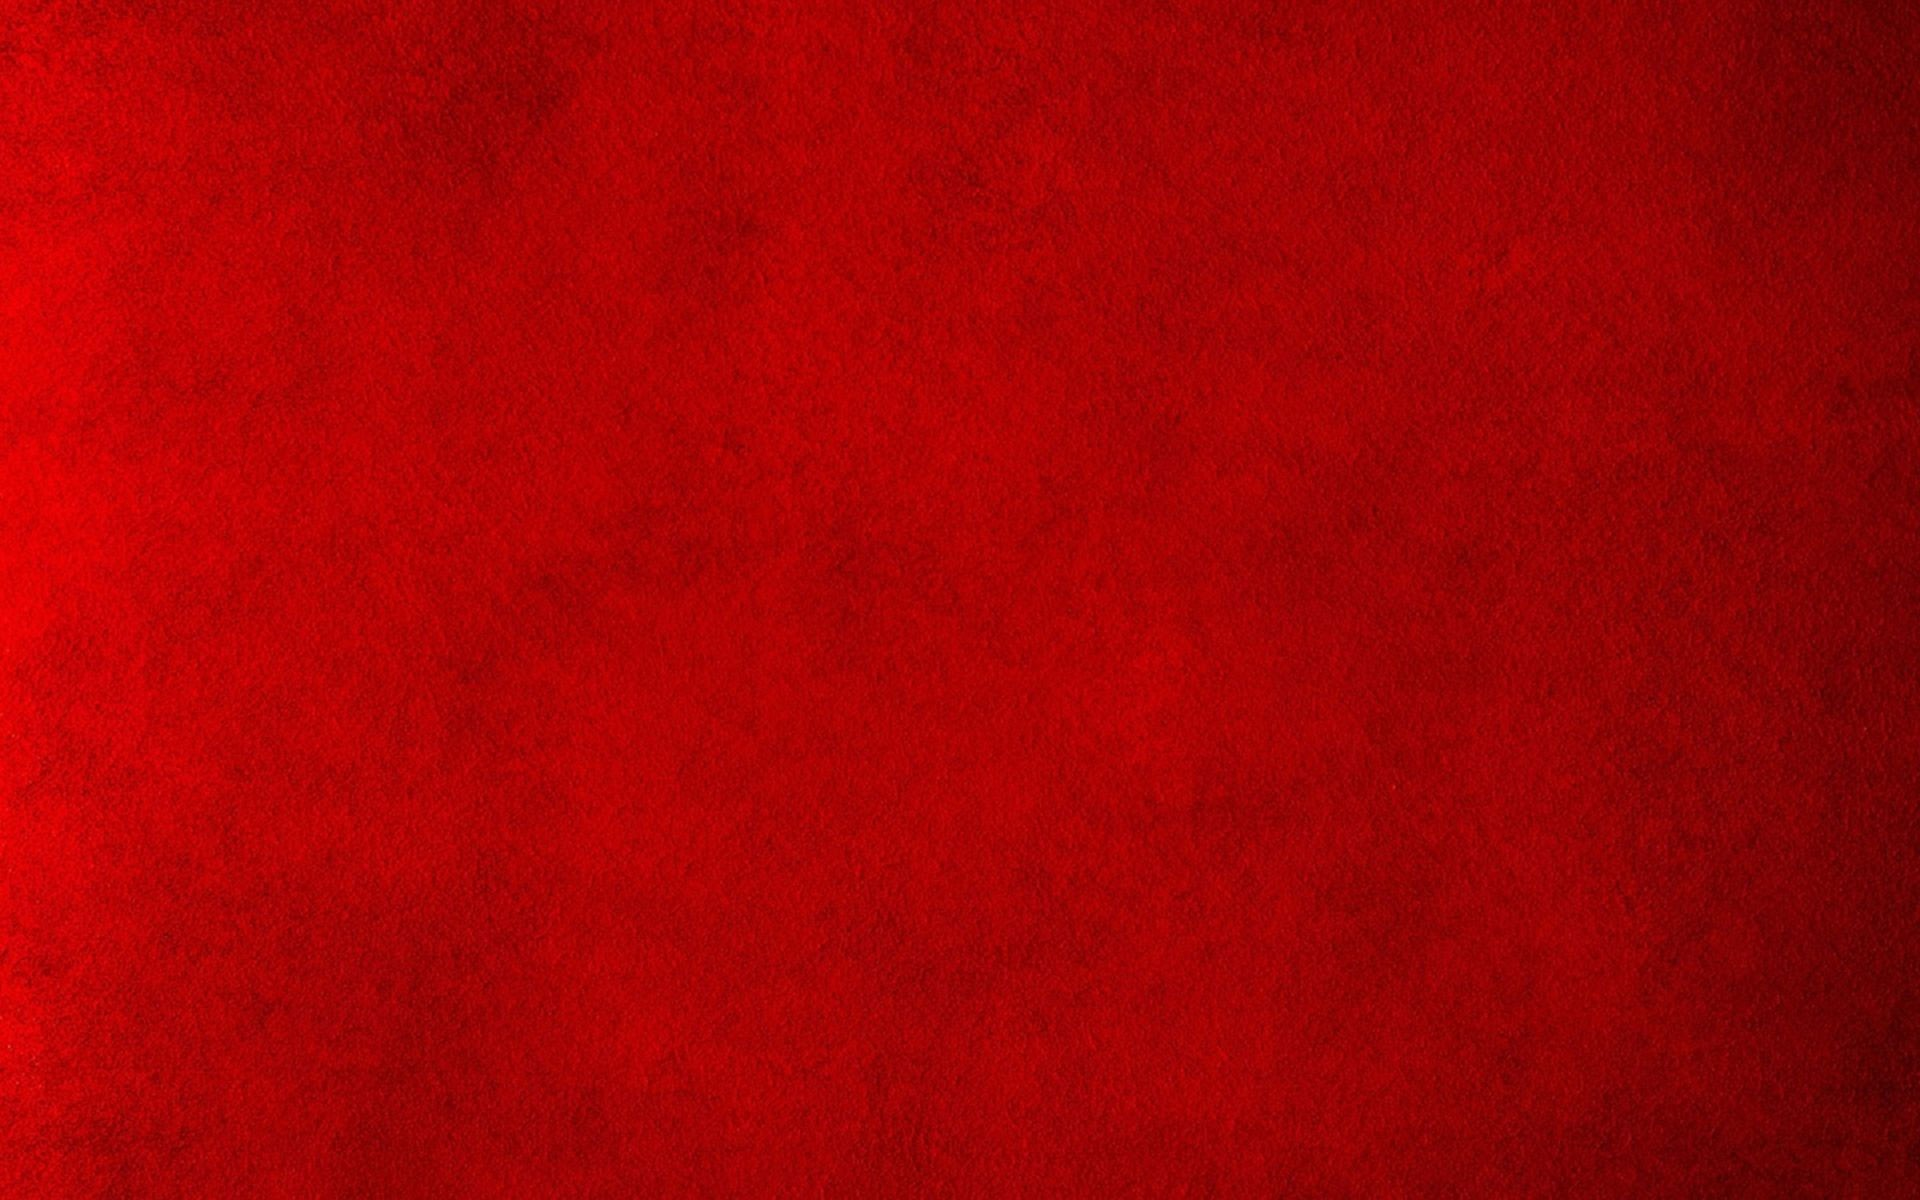 red background hd ·① download free beautiful full hd backgrounds